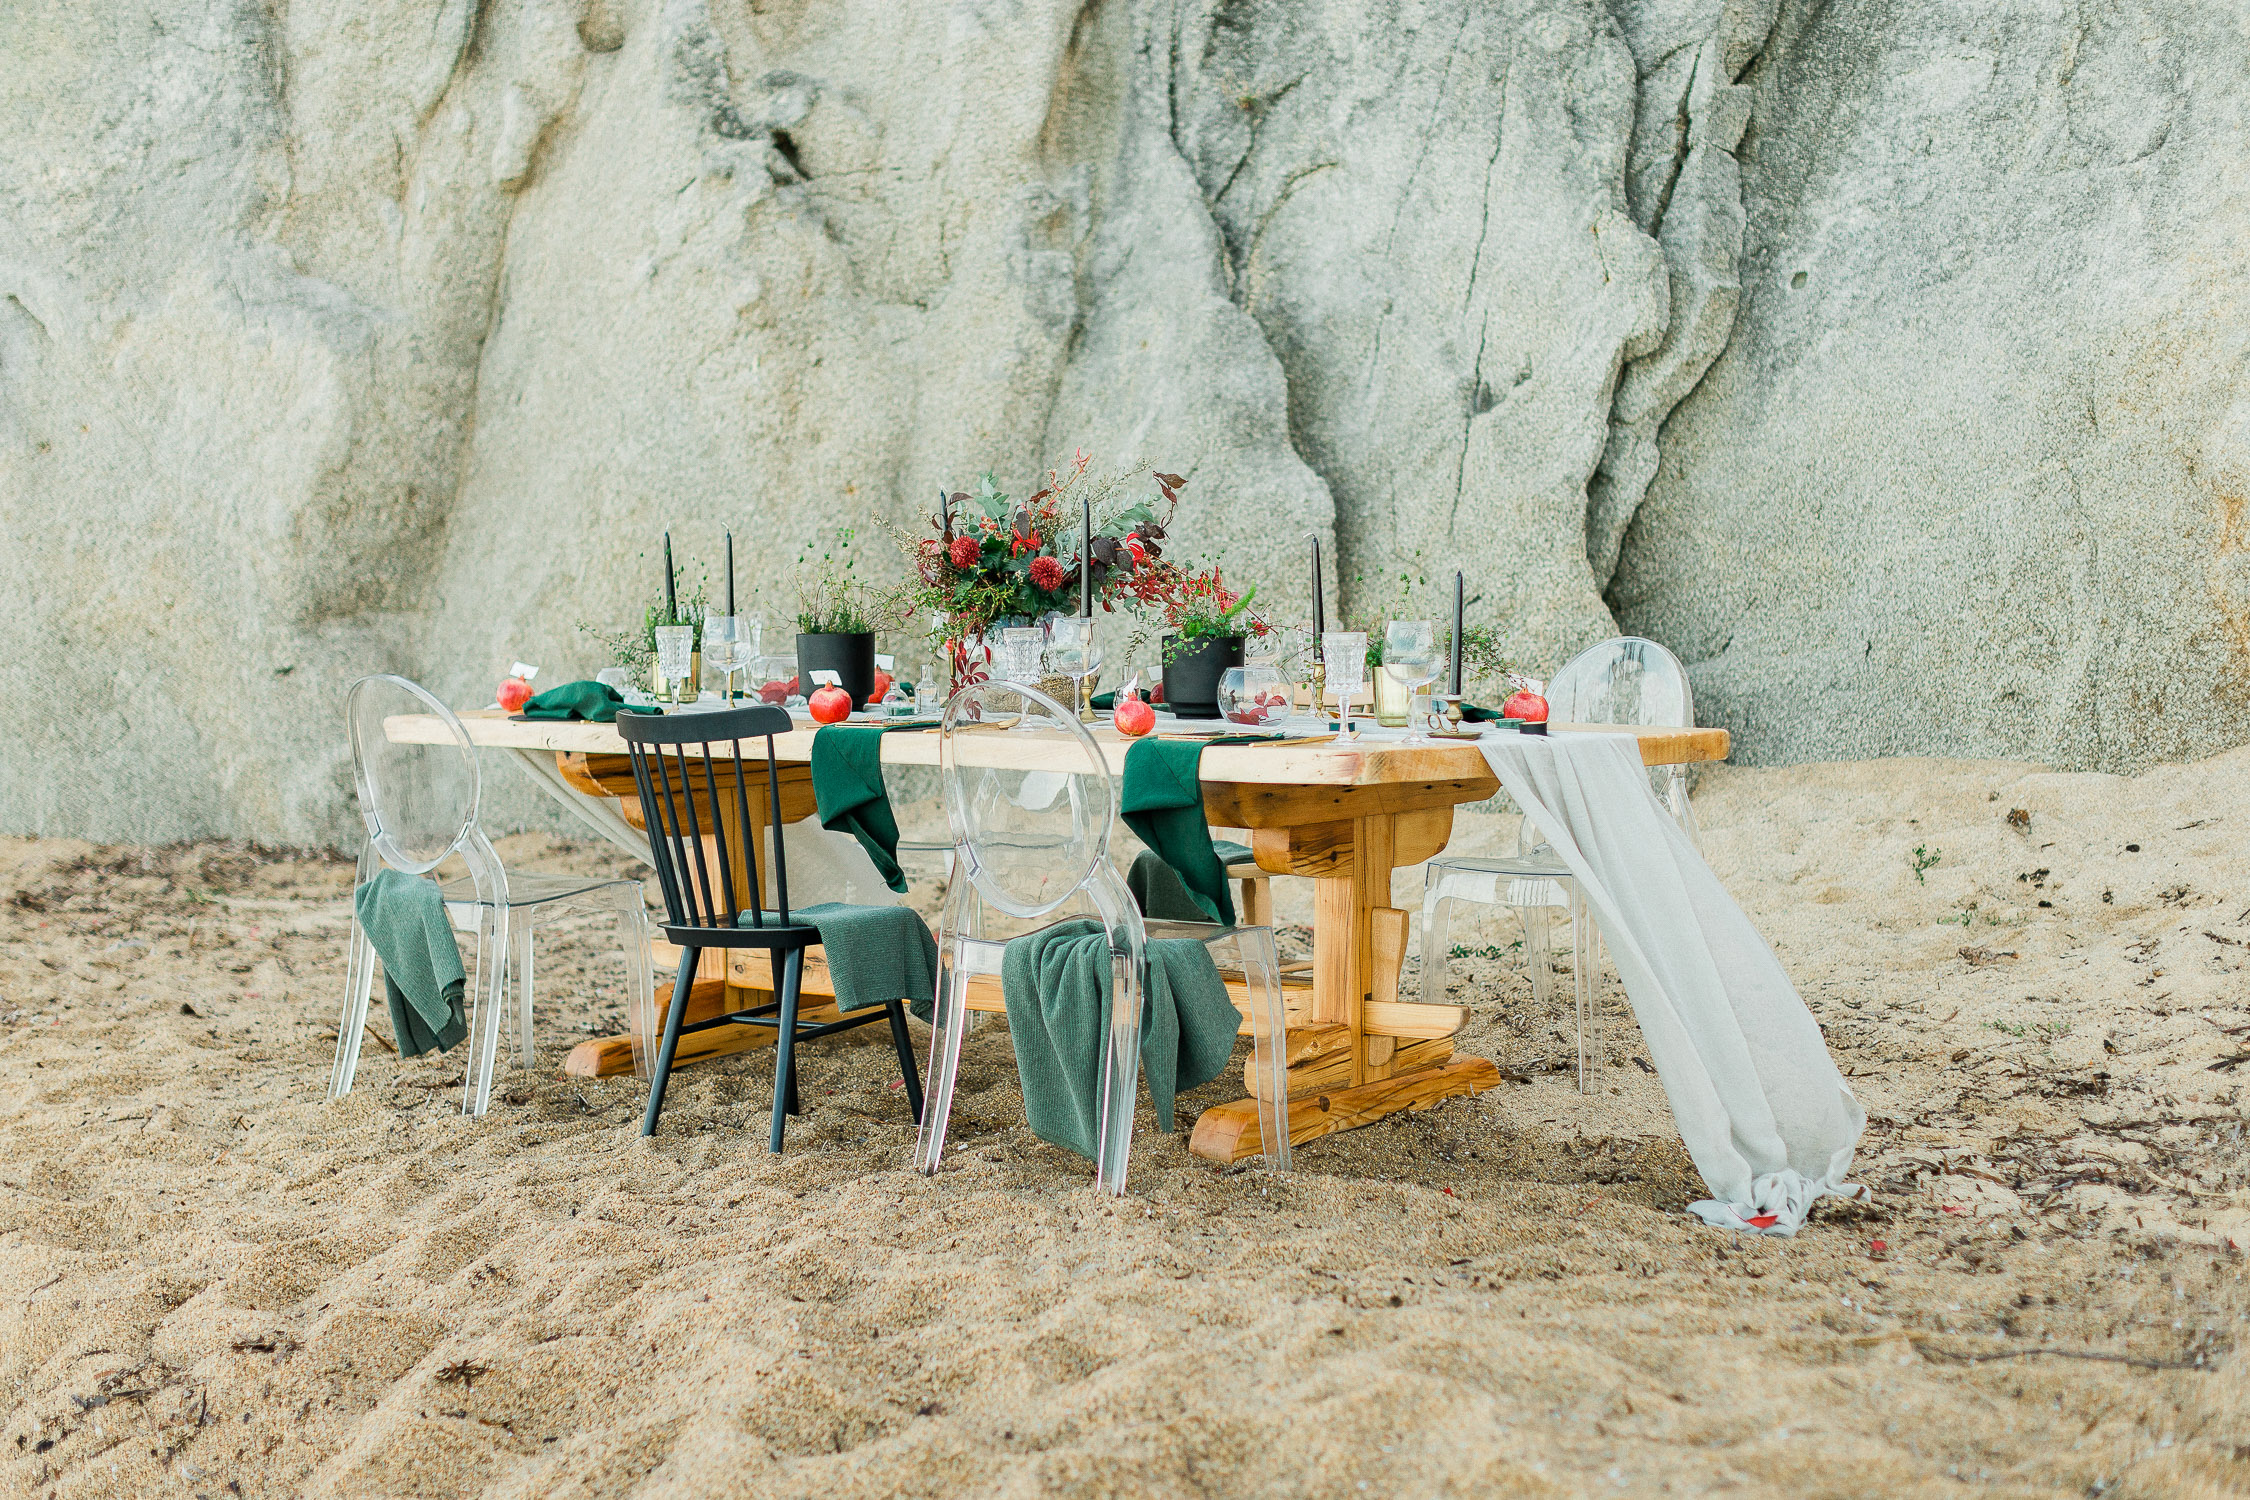 table set up at a rocky beach in Halkidiki